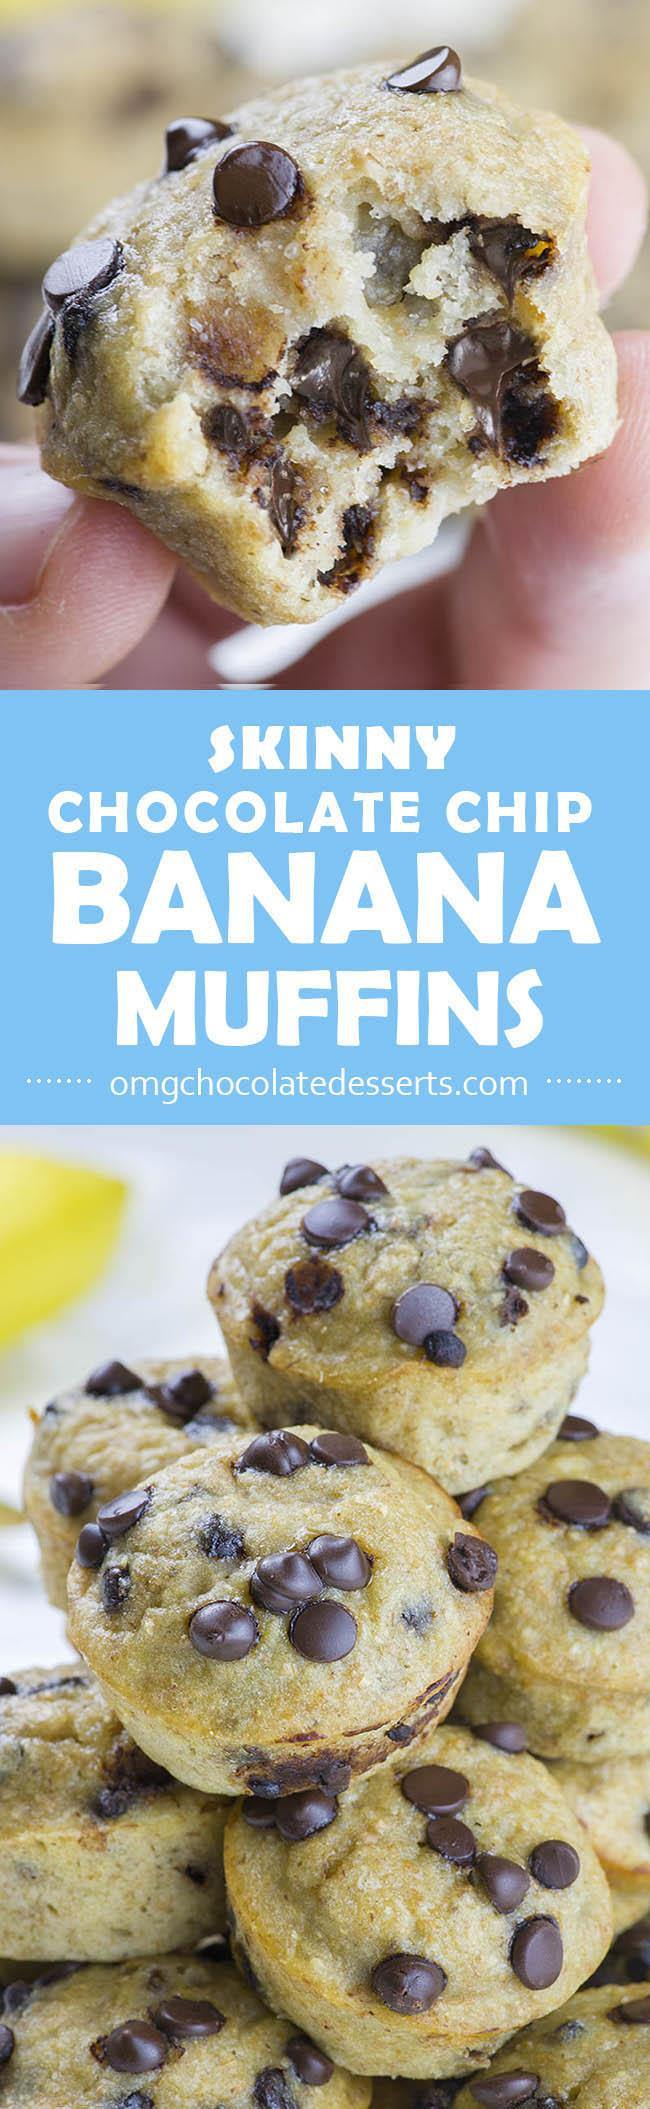 Skinny Chocolate Chip Banana Muffins | OMG Chocolate Desserts